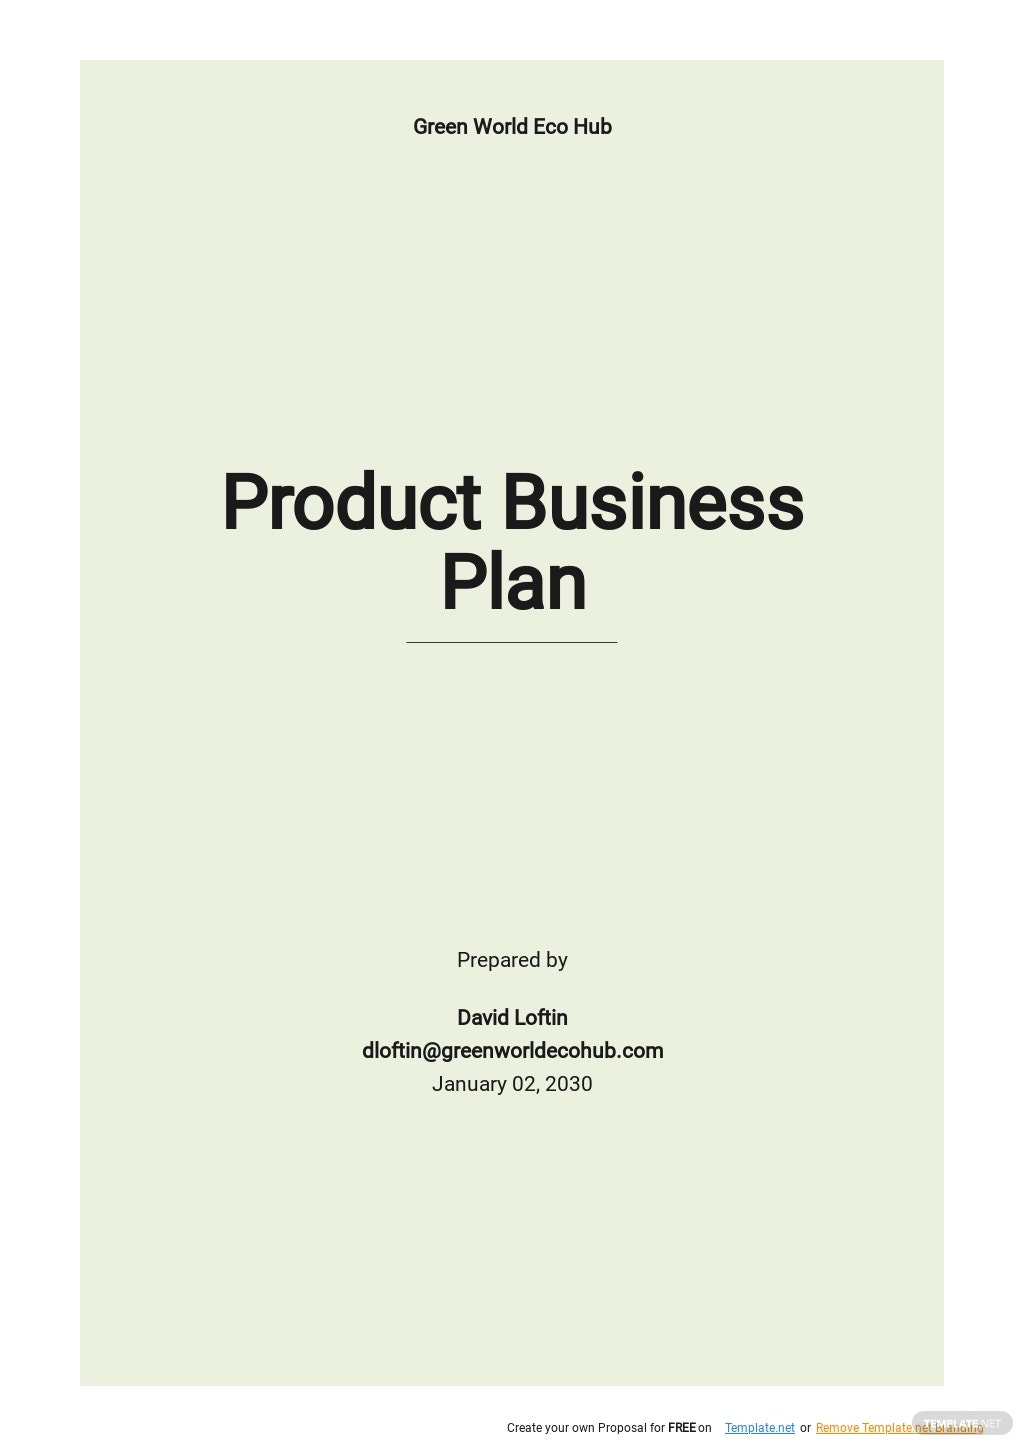 Product Business Plan Template.jpe